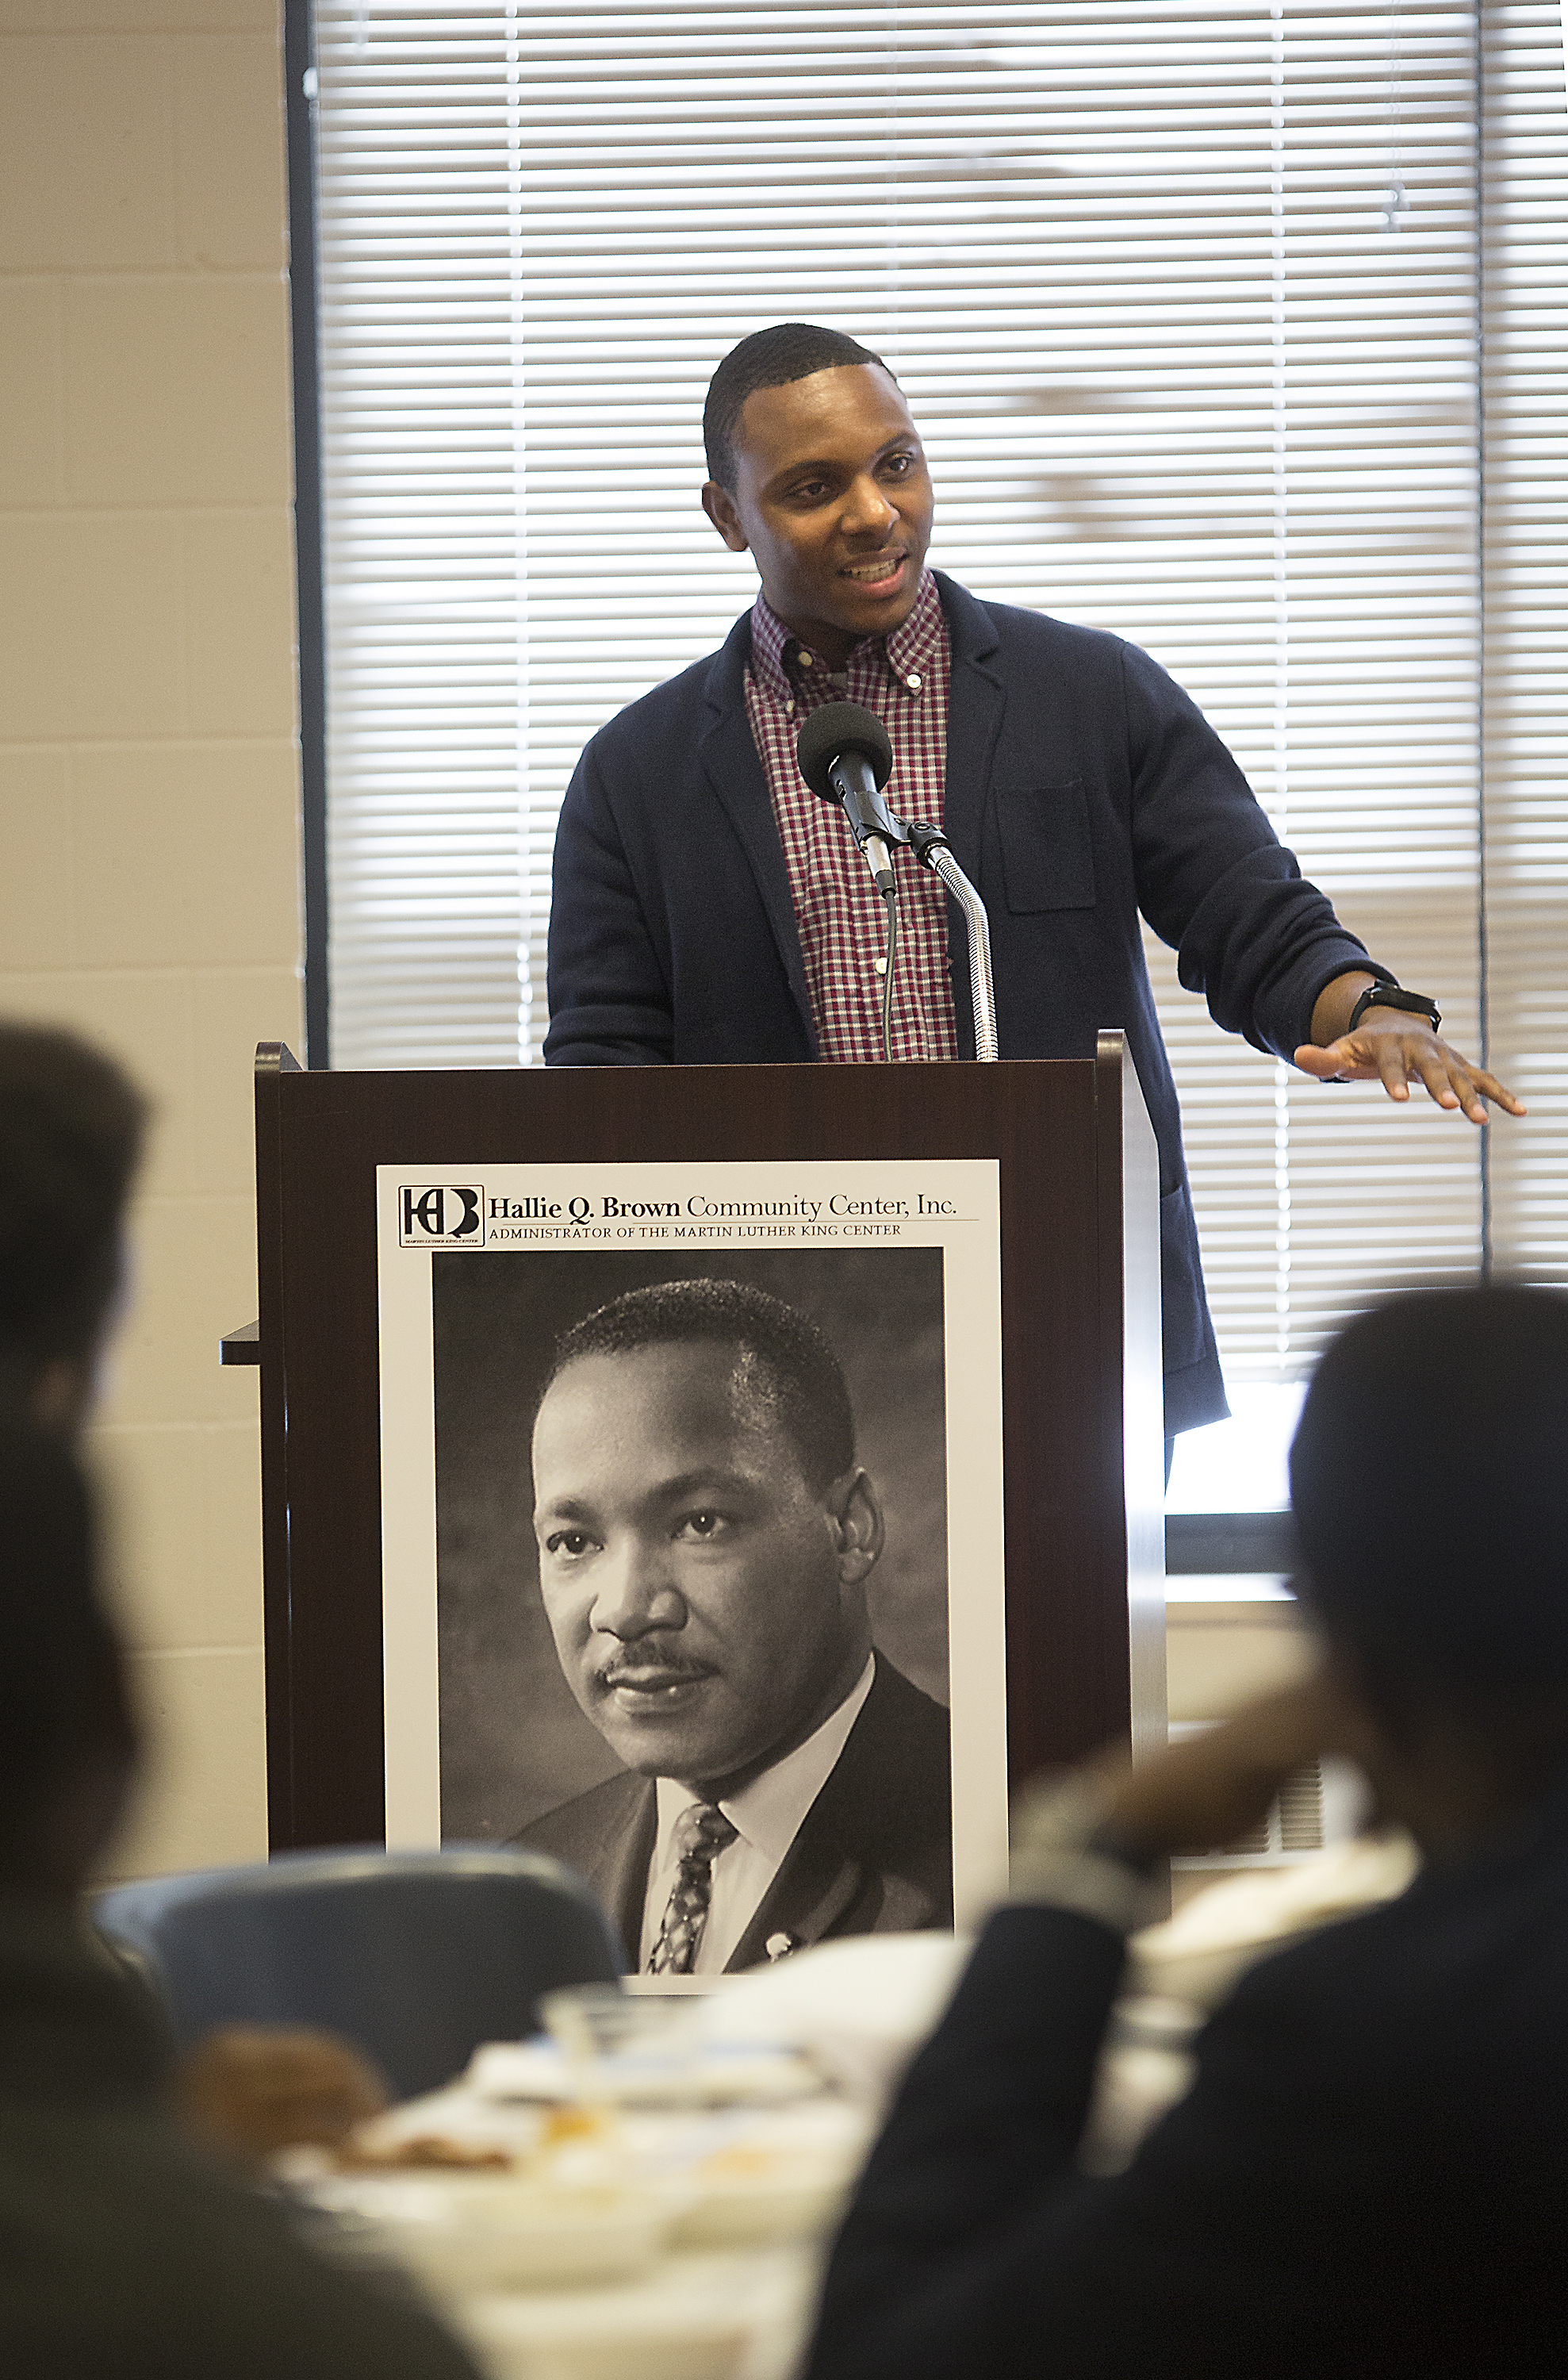 Harris speaks at his graduation from the African American Leadership Forum's fellowship program this month. Photo by David Pierini.